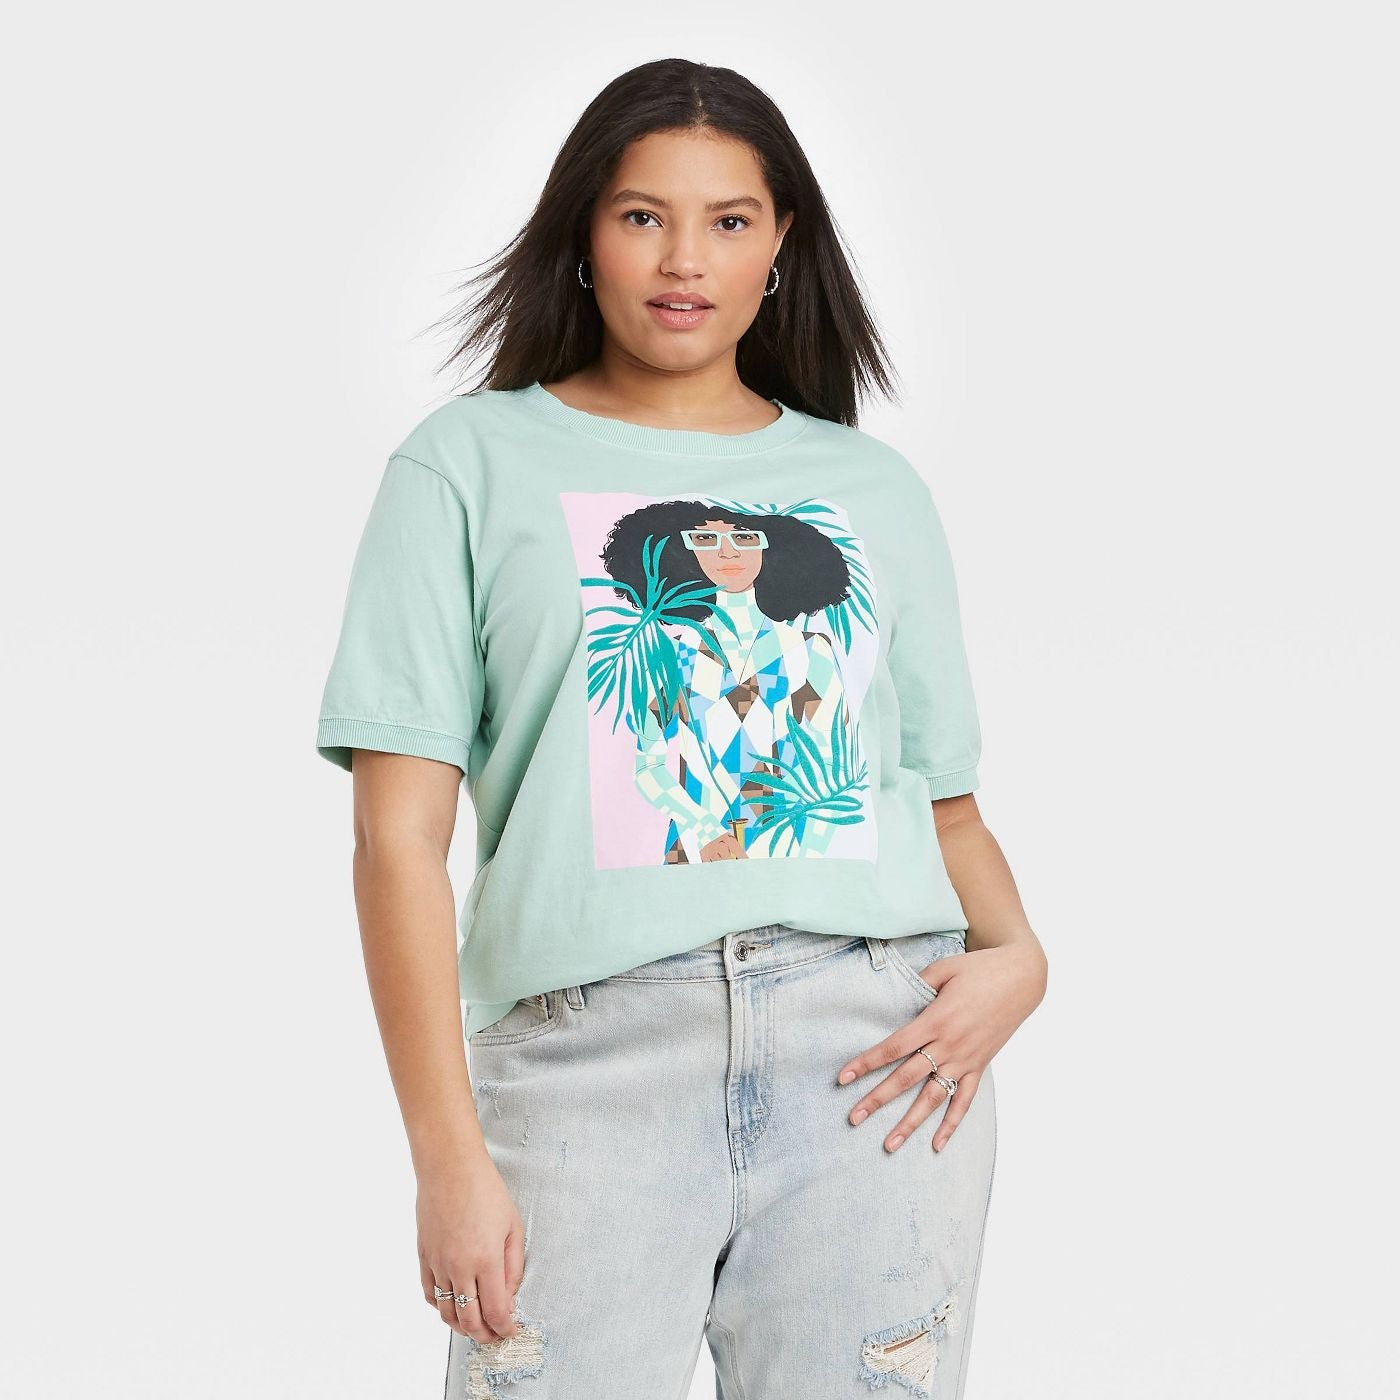 model wearing the teal t-shirt with illustration of a person with curly hair and square glasses holding a few palm leaves